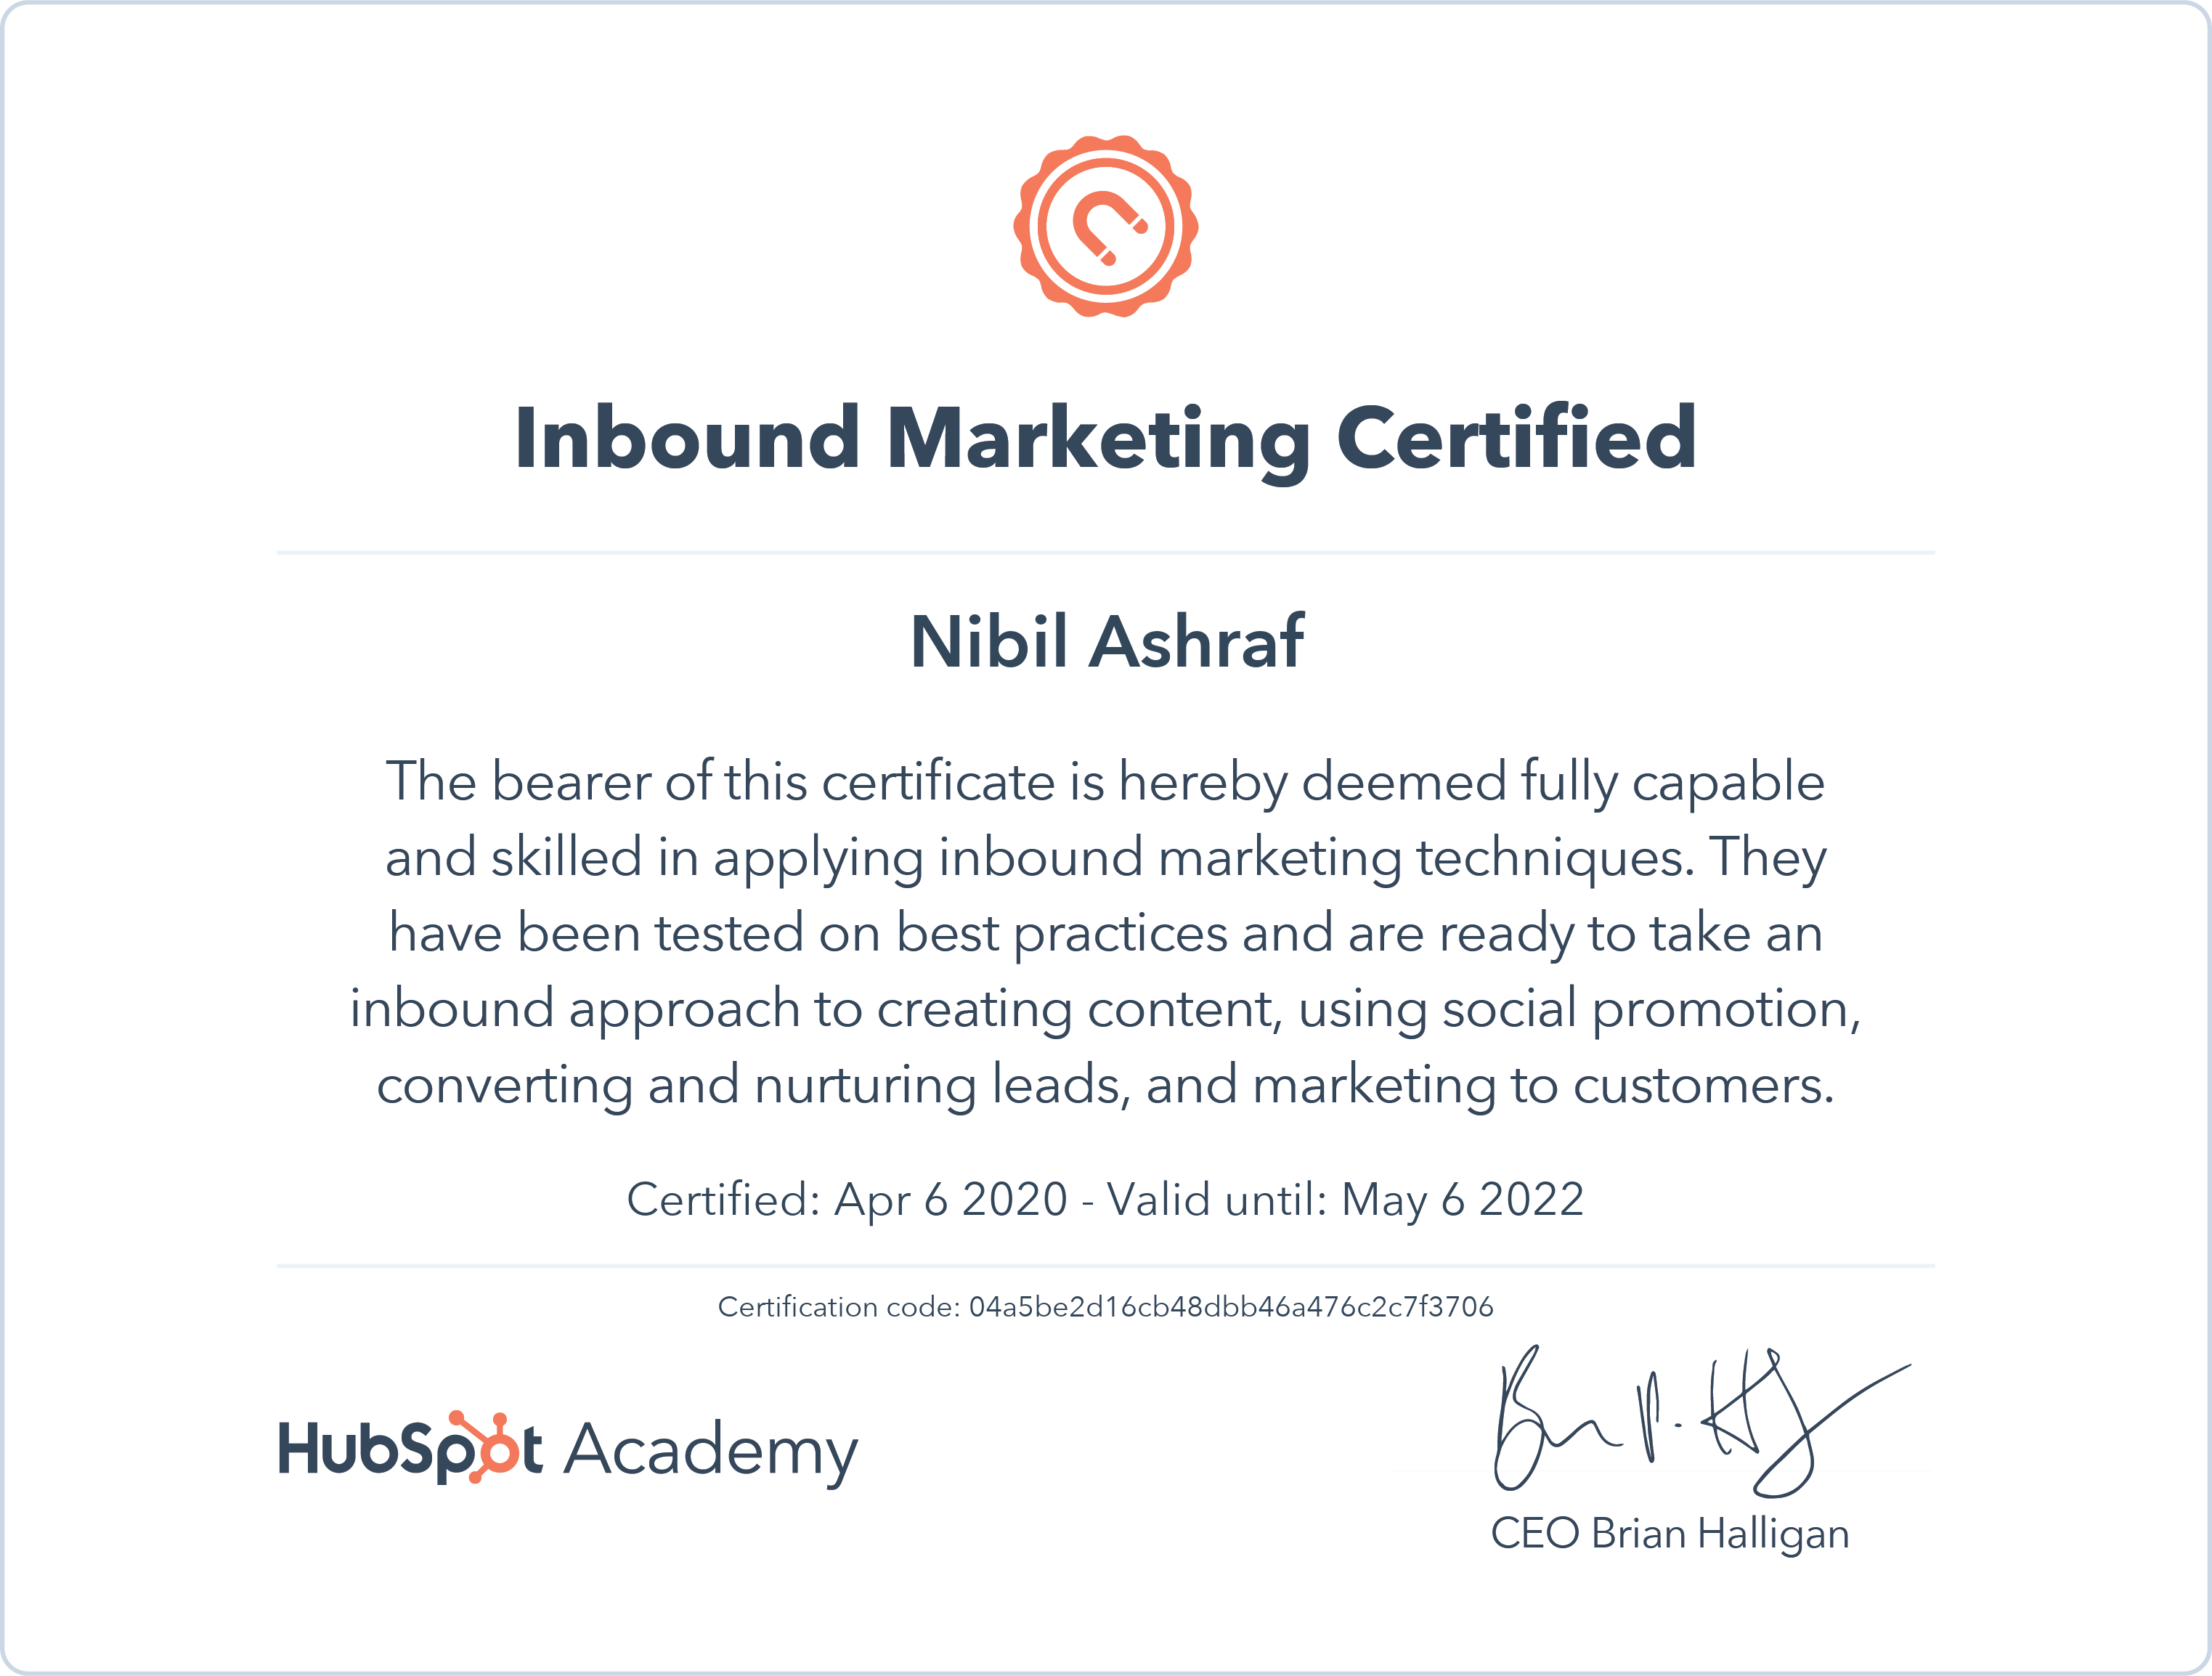 Nibil - Inbound Marketing Certification